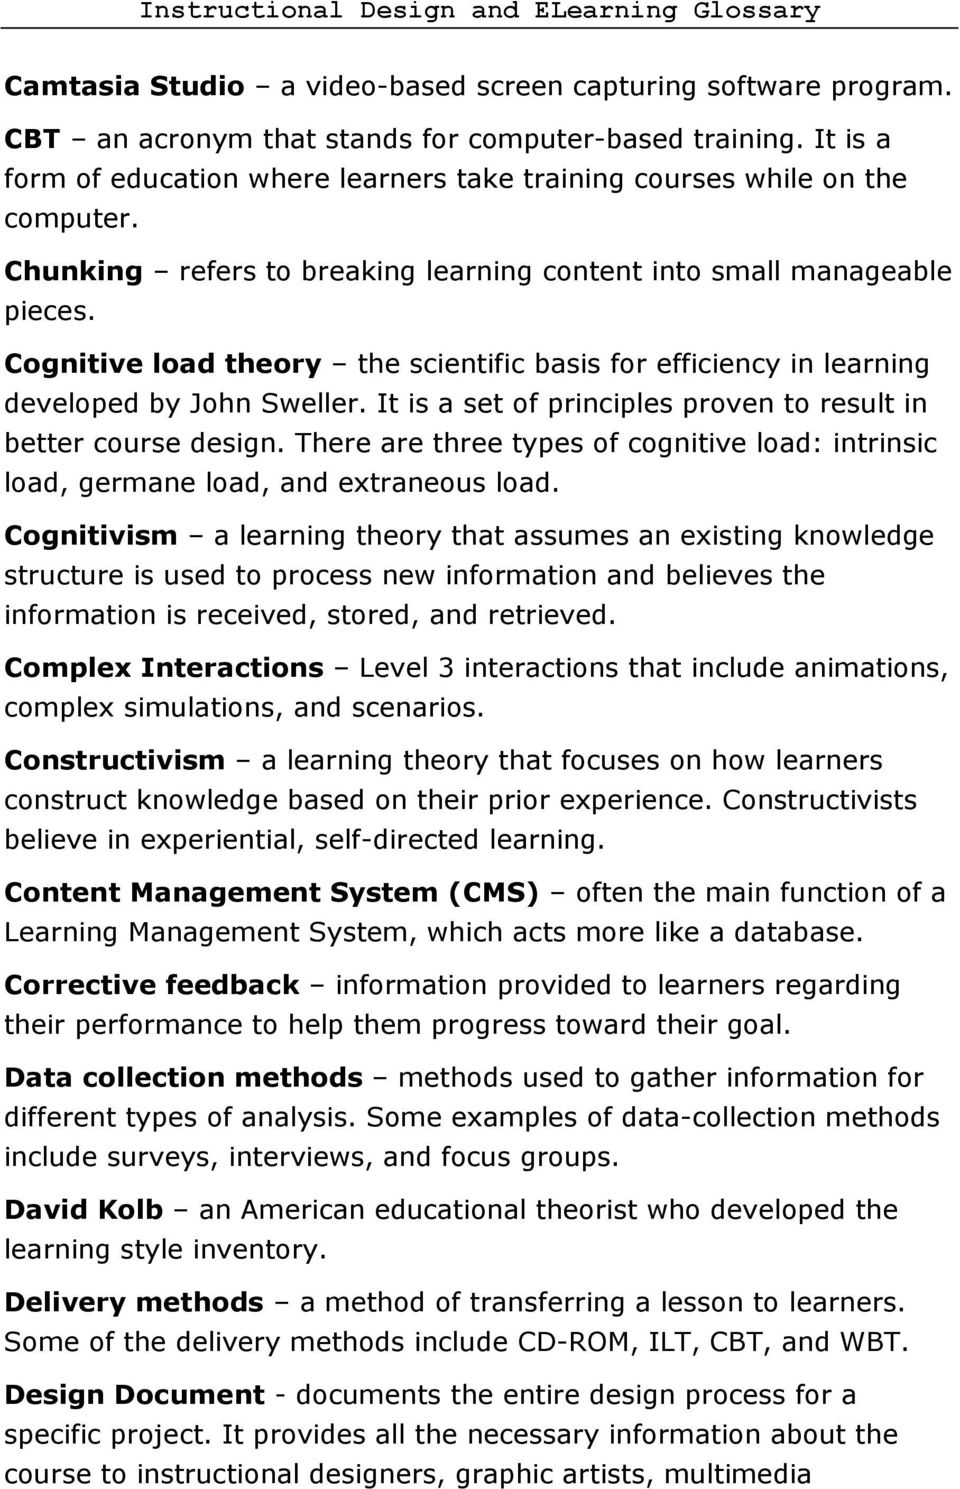 Cognitive load theory the scientific basis for efficiency in learning developed by John Sweller. It is a set of principles proven to result in better course design.